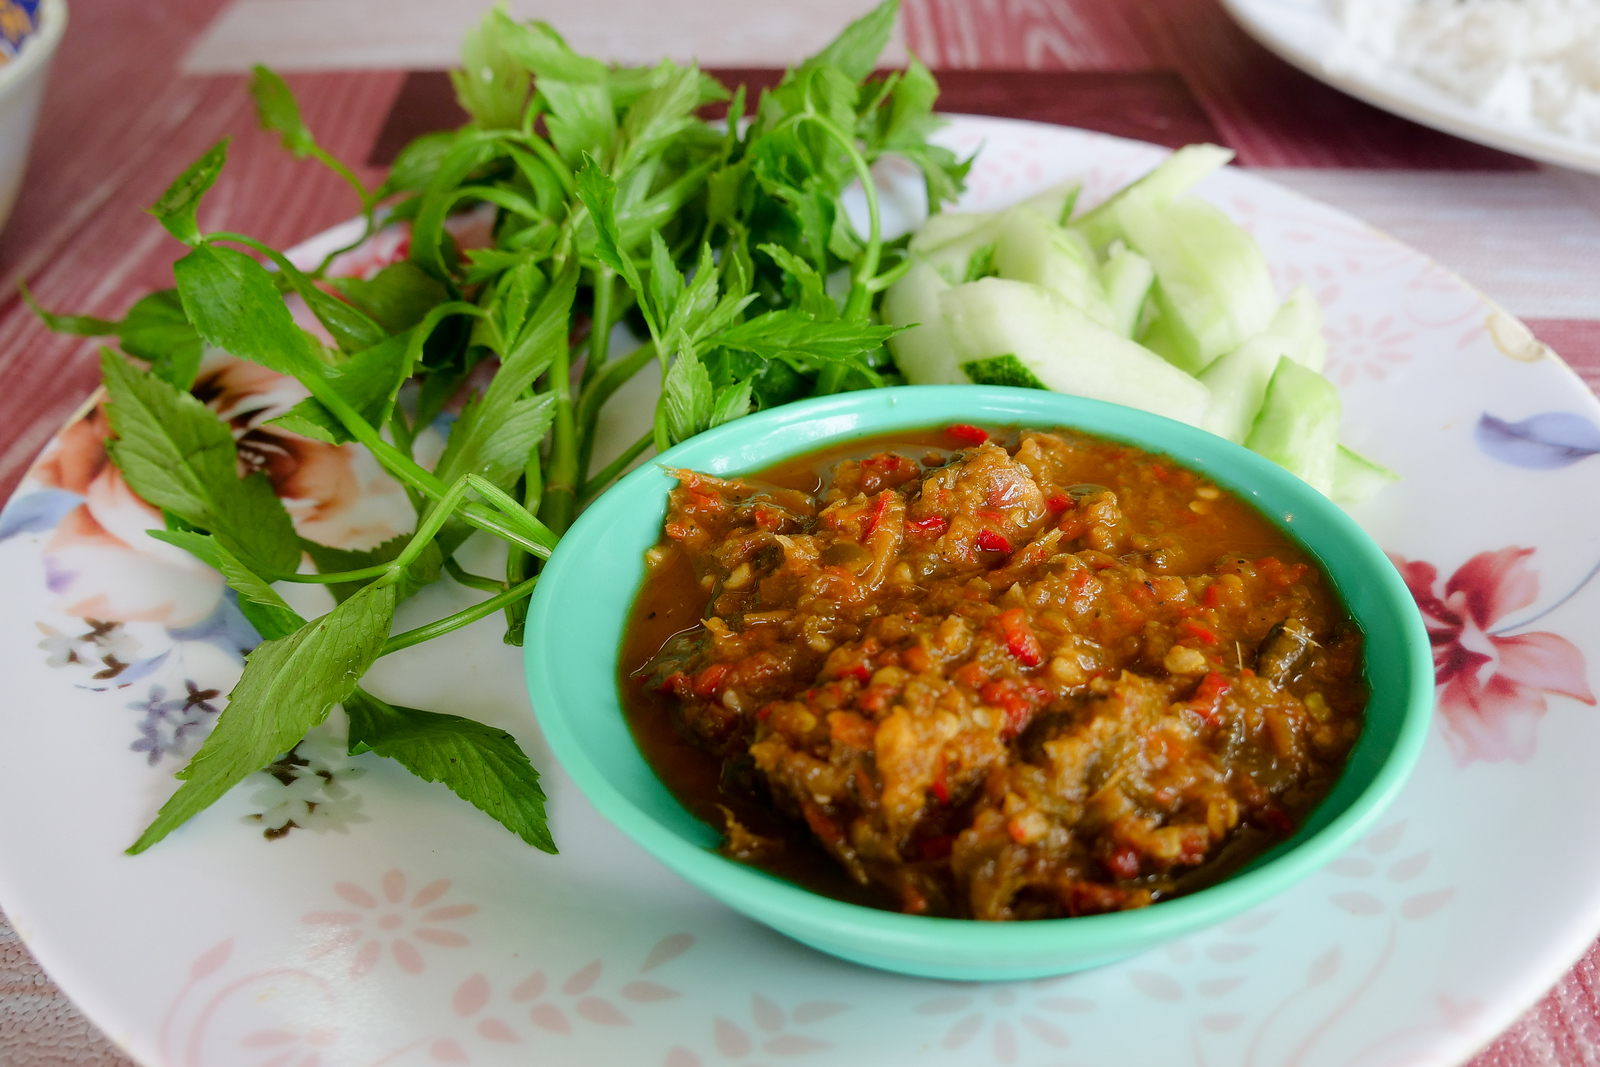 Incredibly delicious sambal, so full of flavor, this dish was gone in a hurry